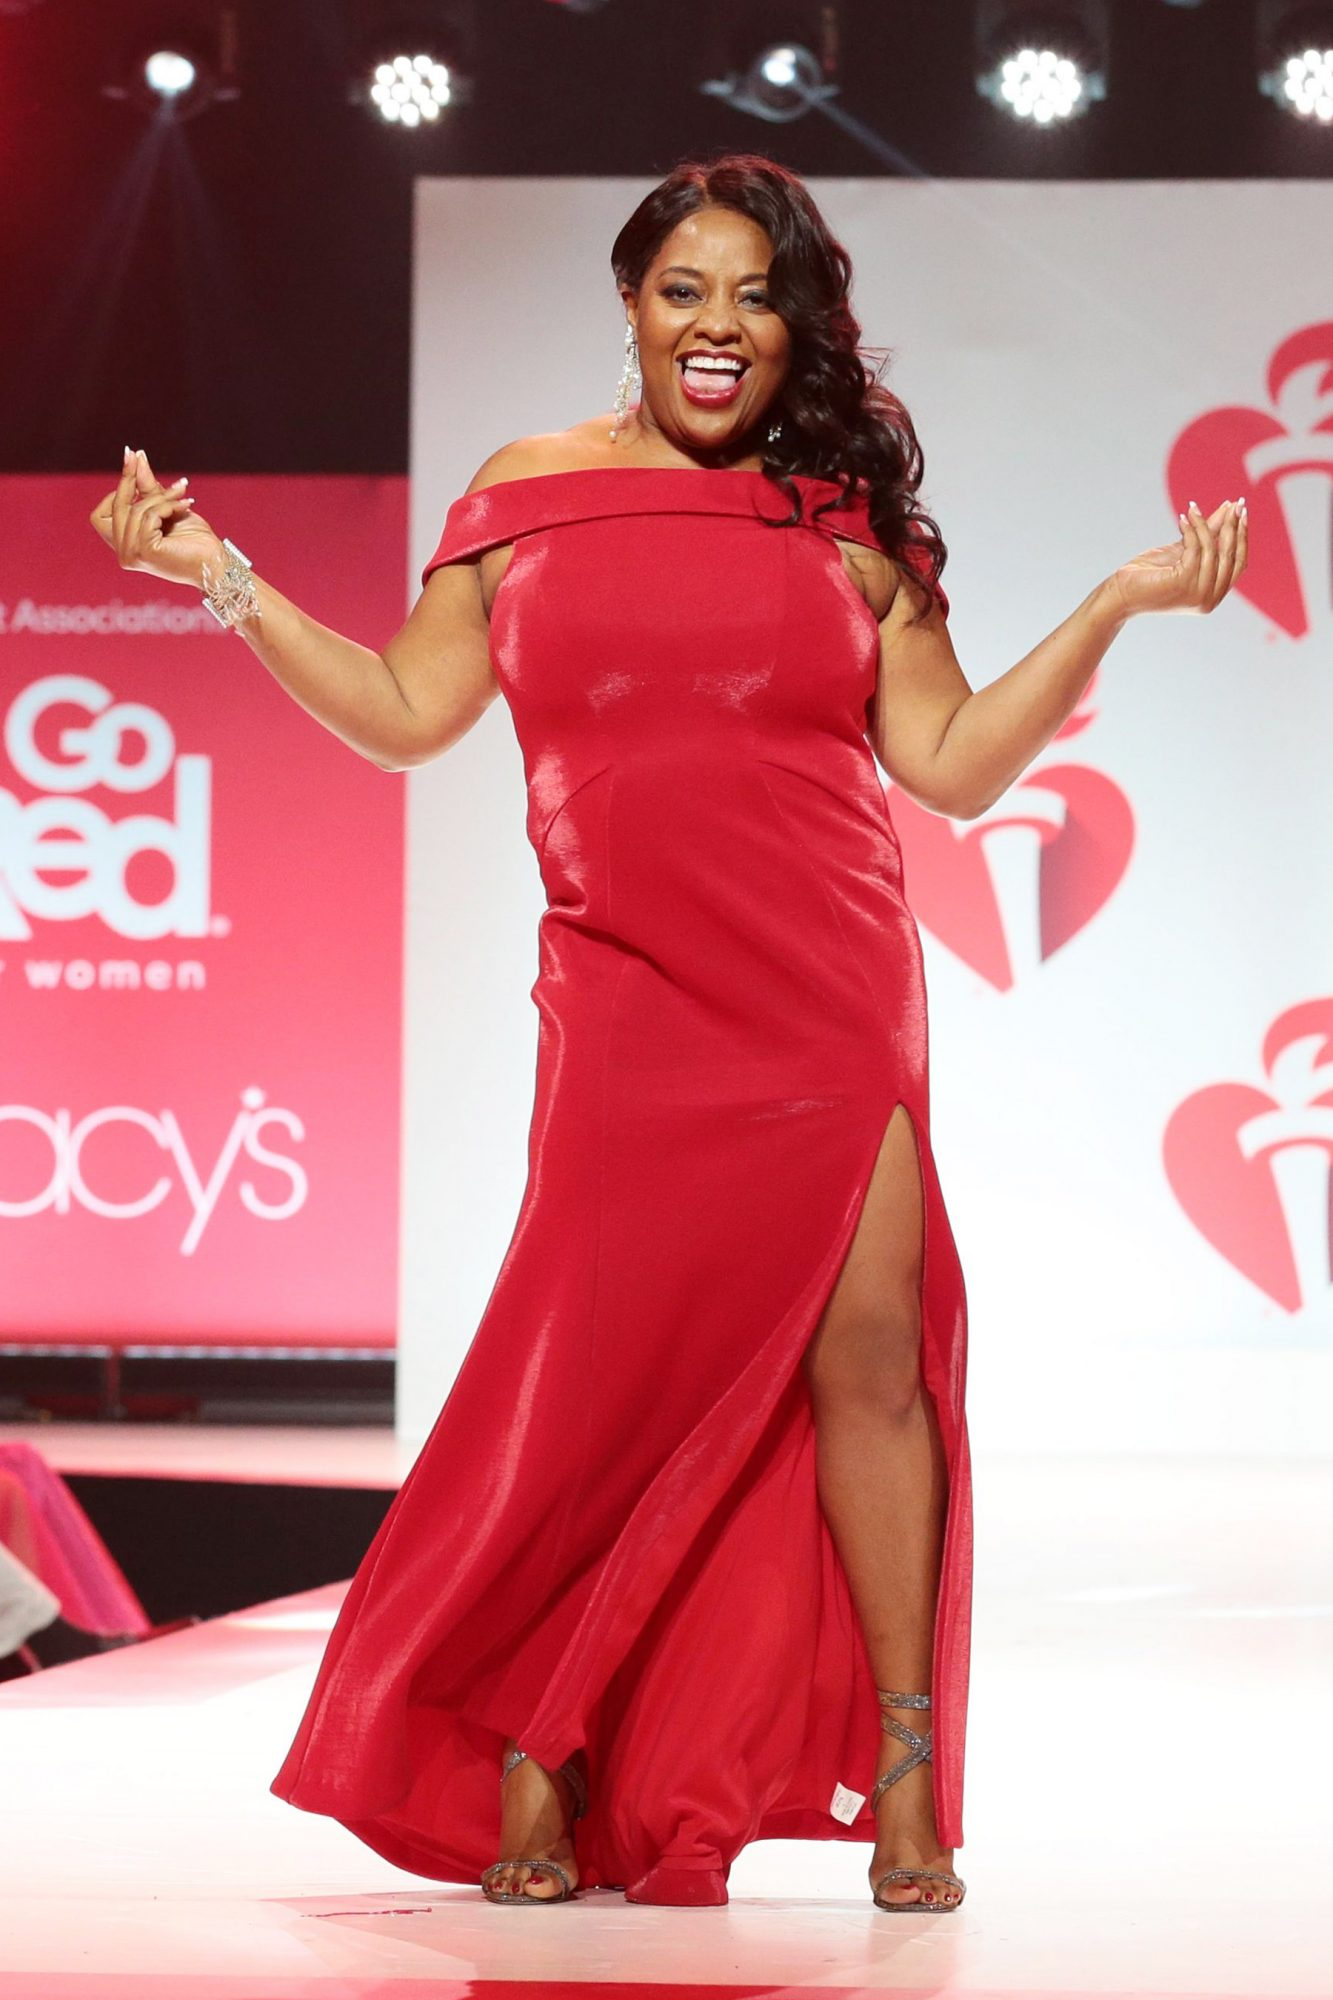 15th Annual American Heart Association's 'Go Red for Women' Red Dress Collection show, Runway, Fall Winter 2019, New York Fashion Week, USA - 07 Feb 2019